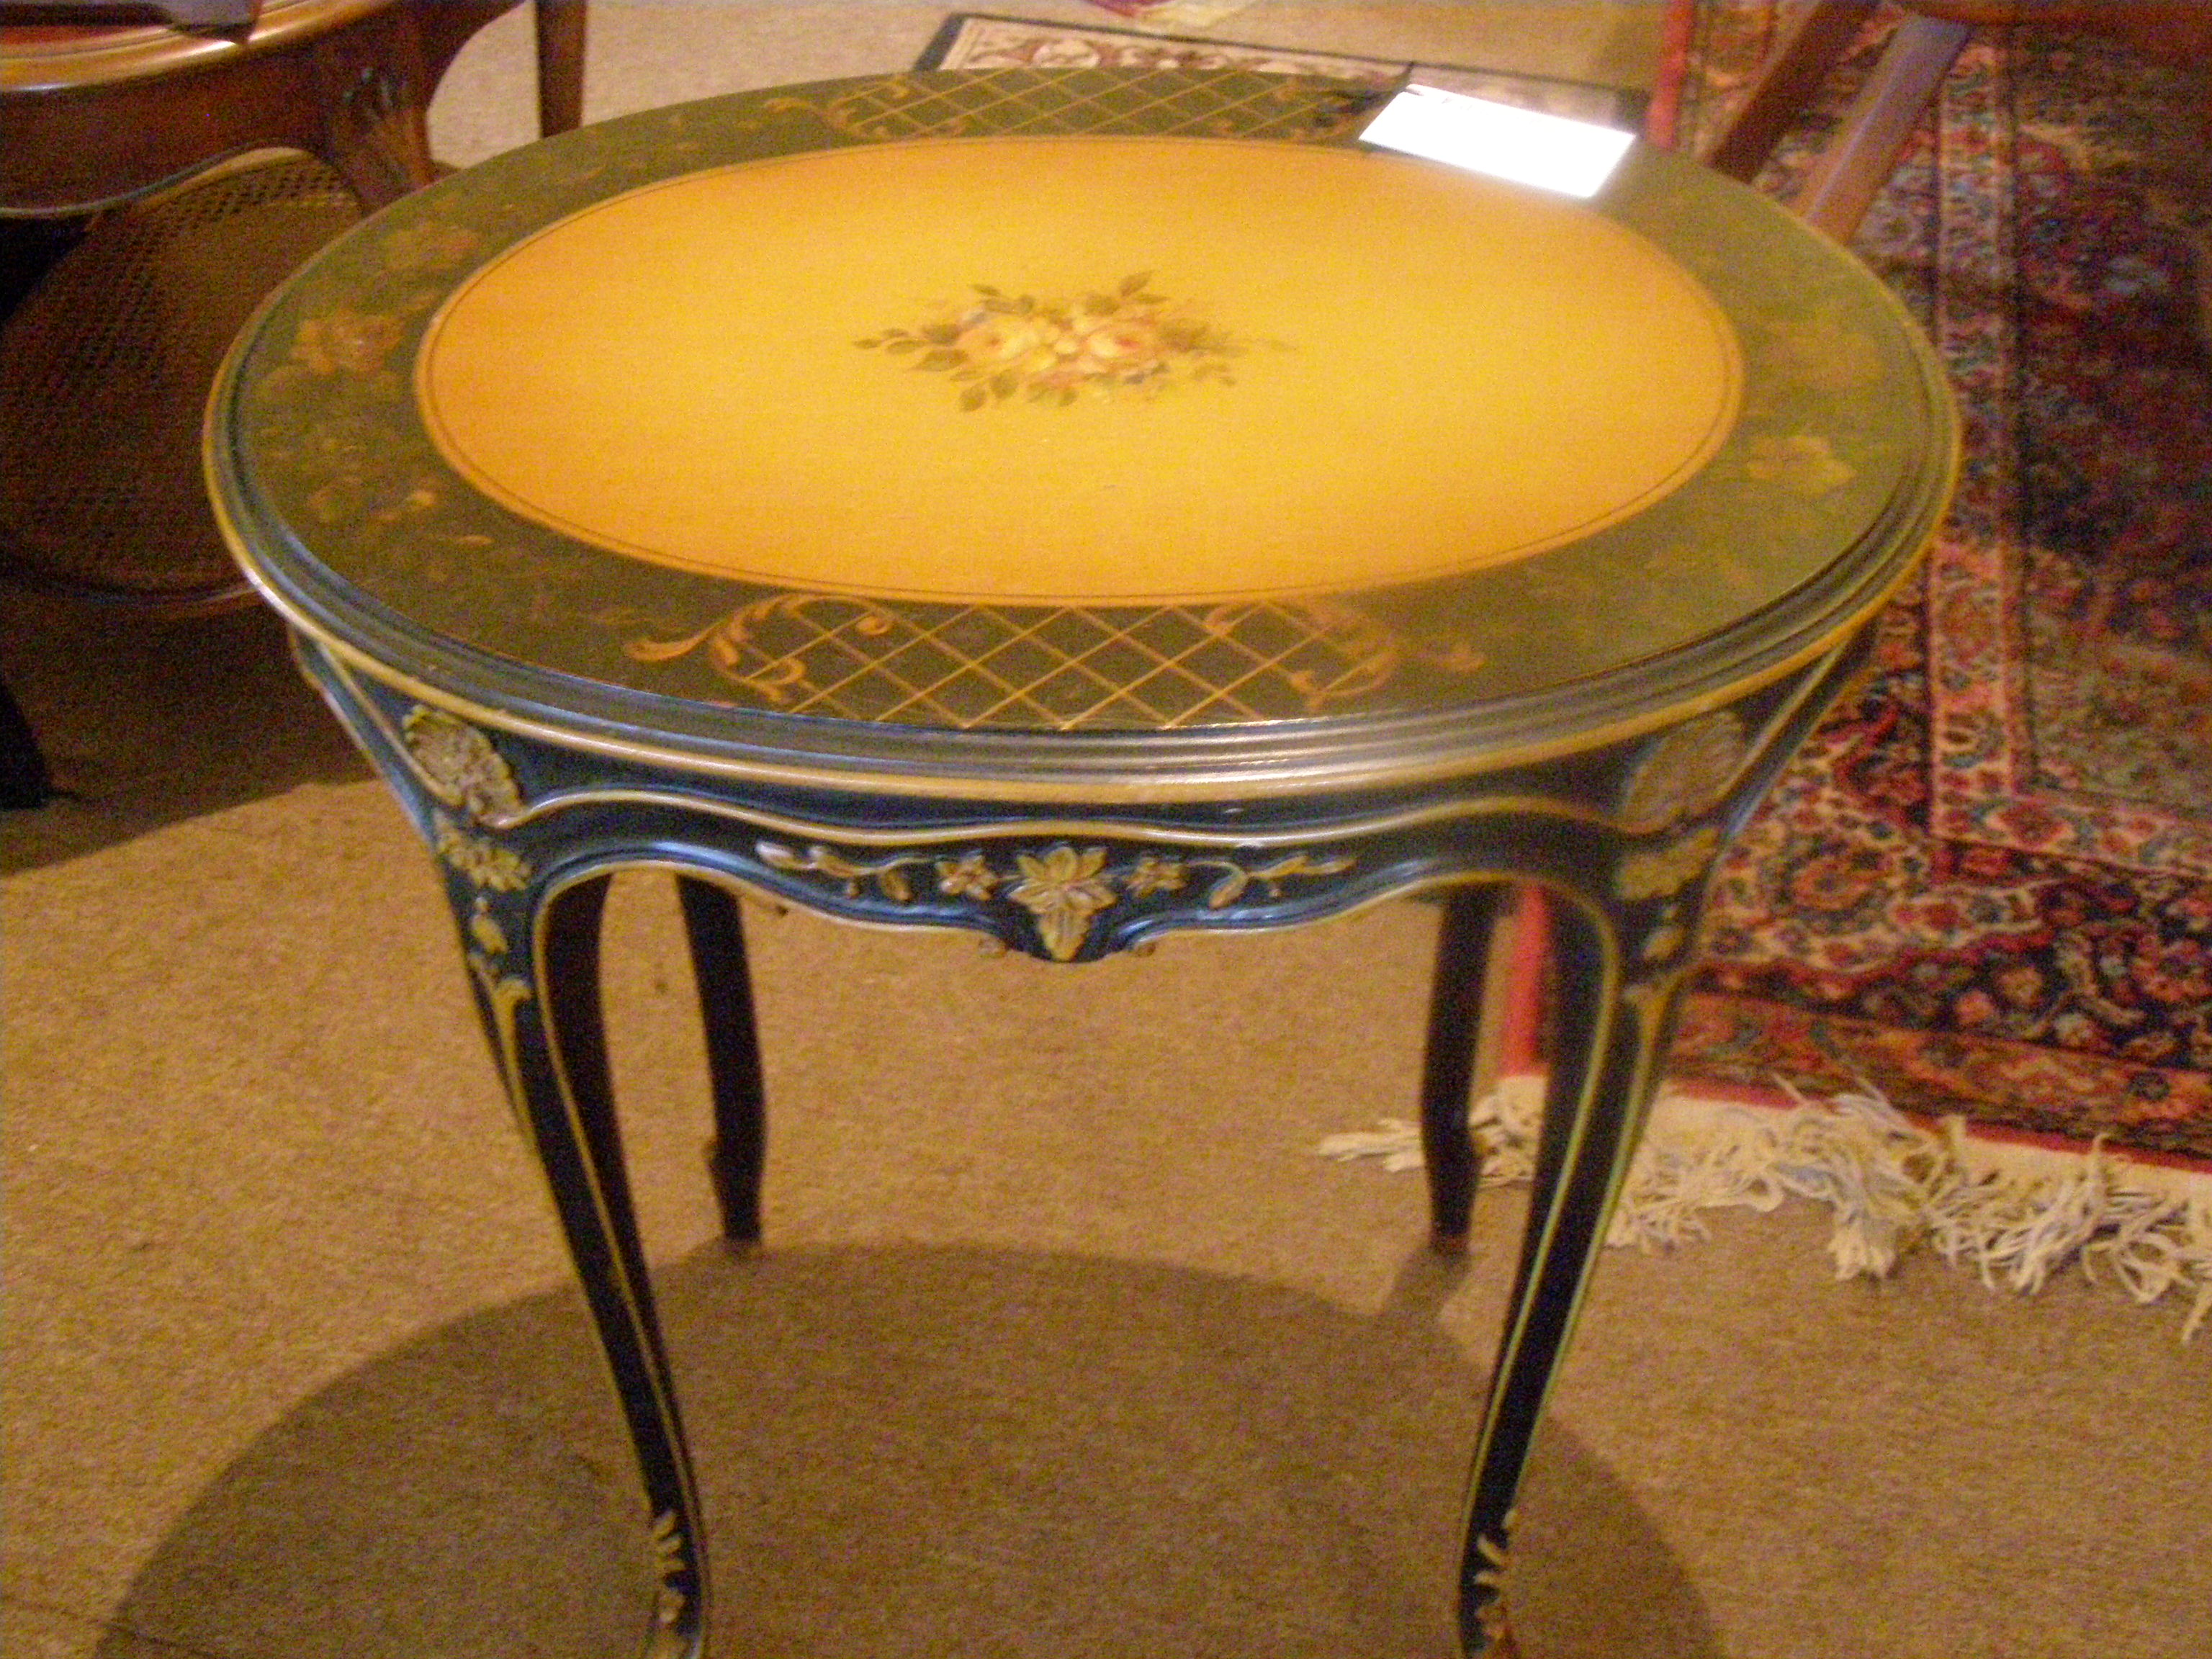 1930's French Style Table - $295